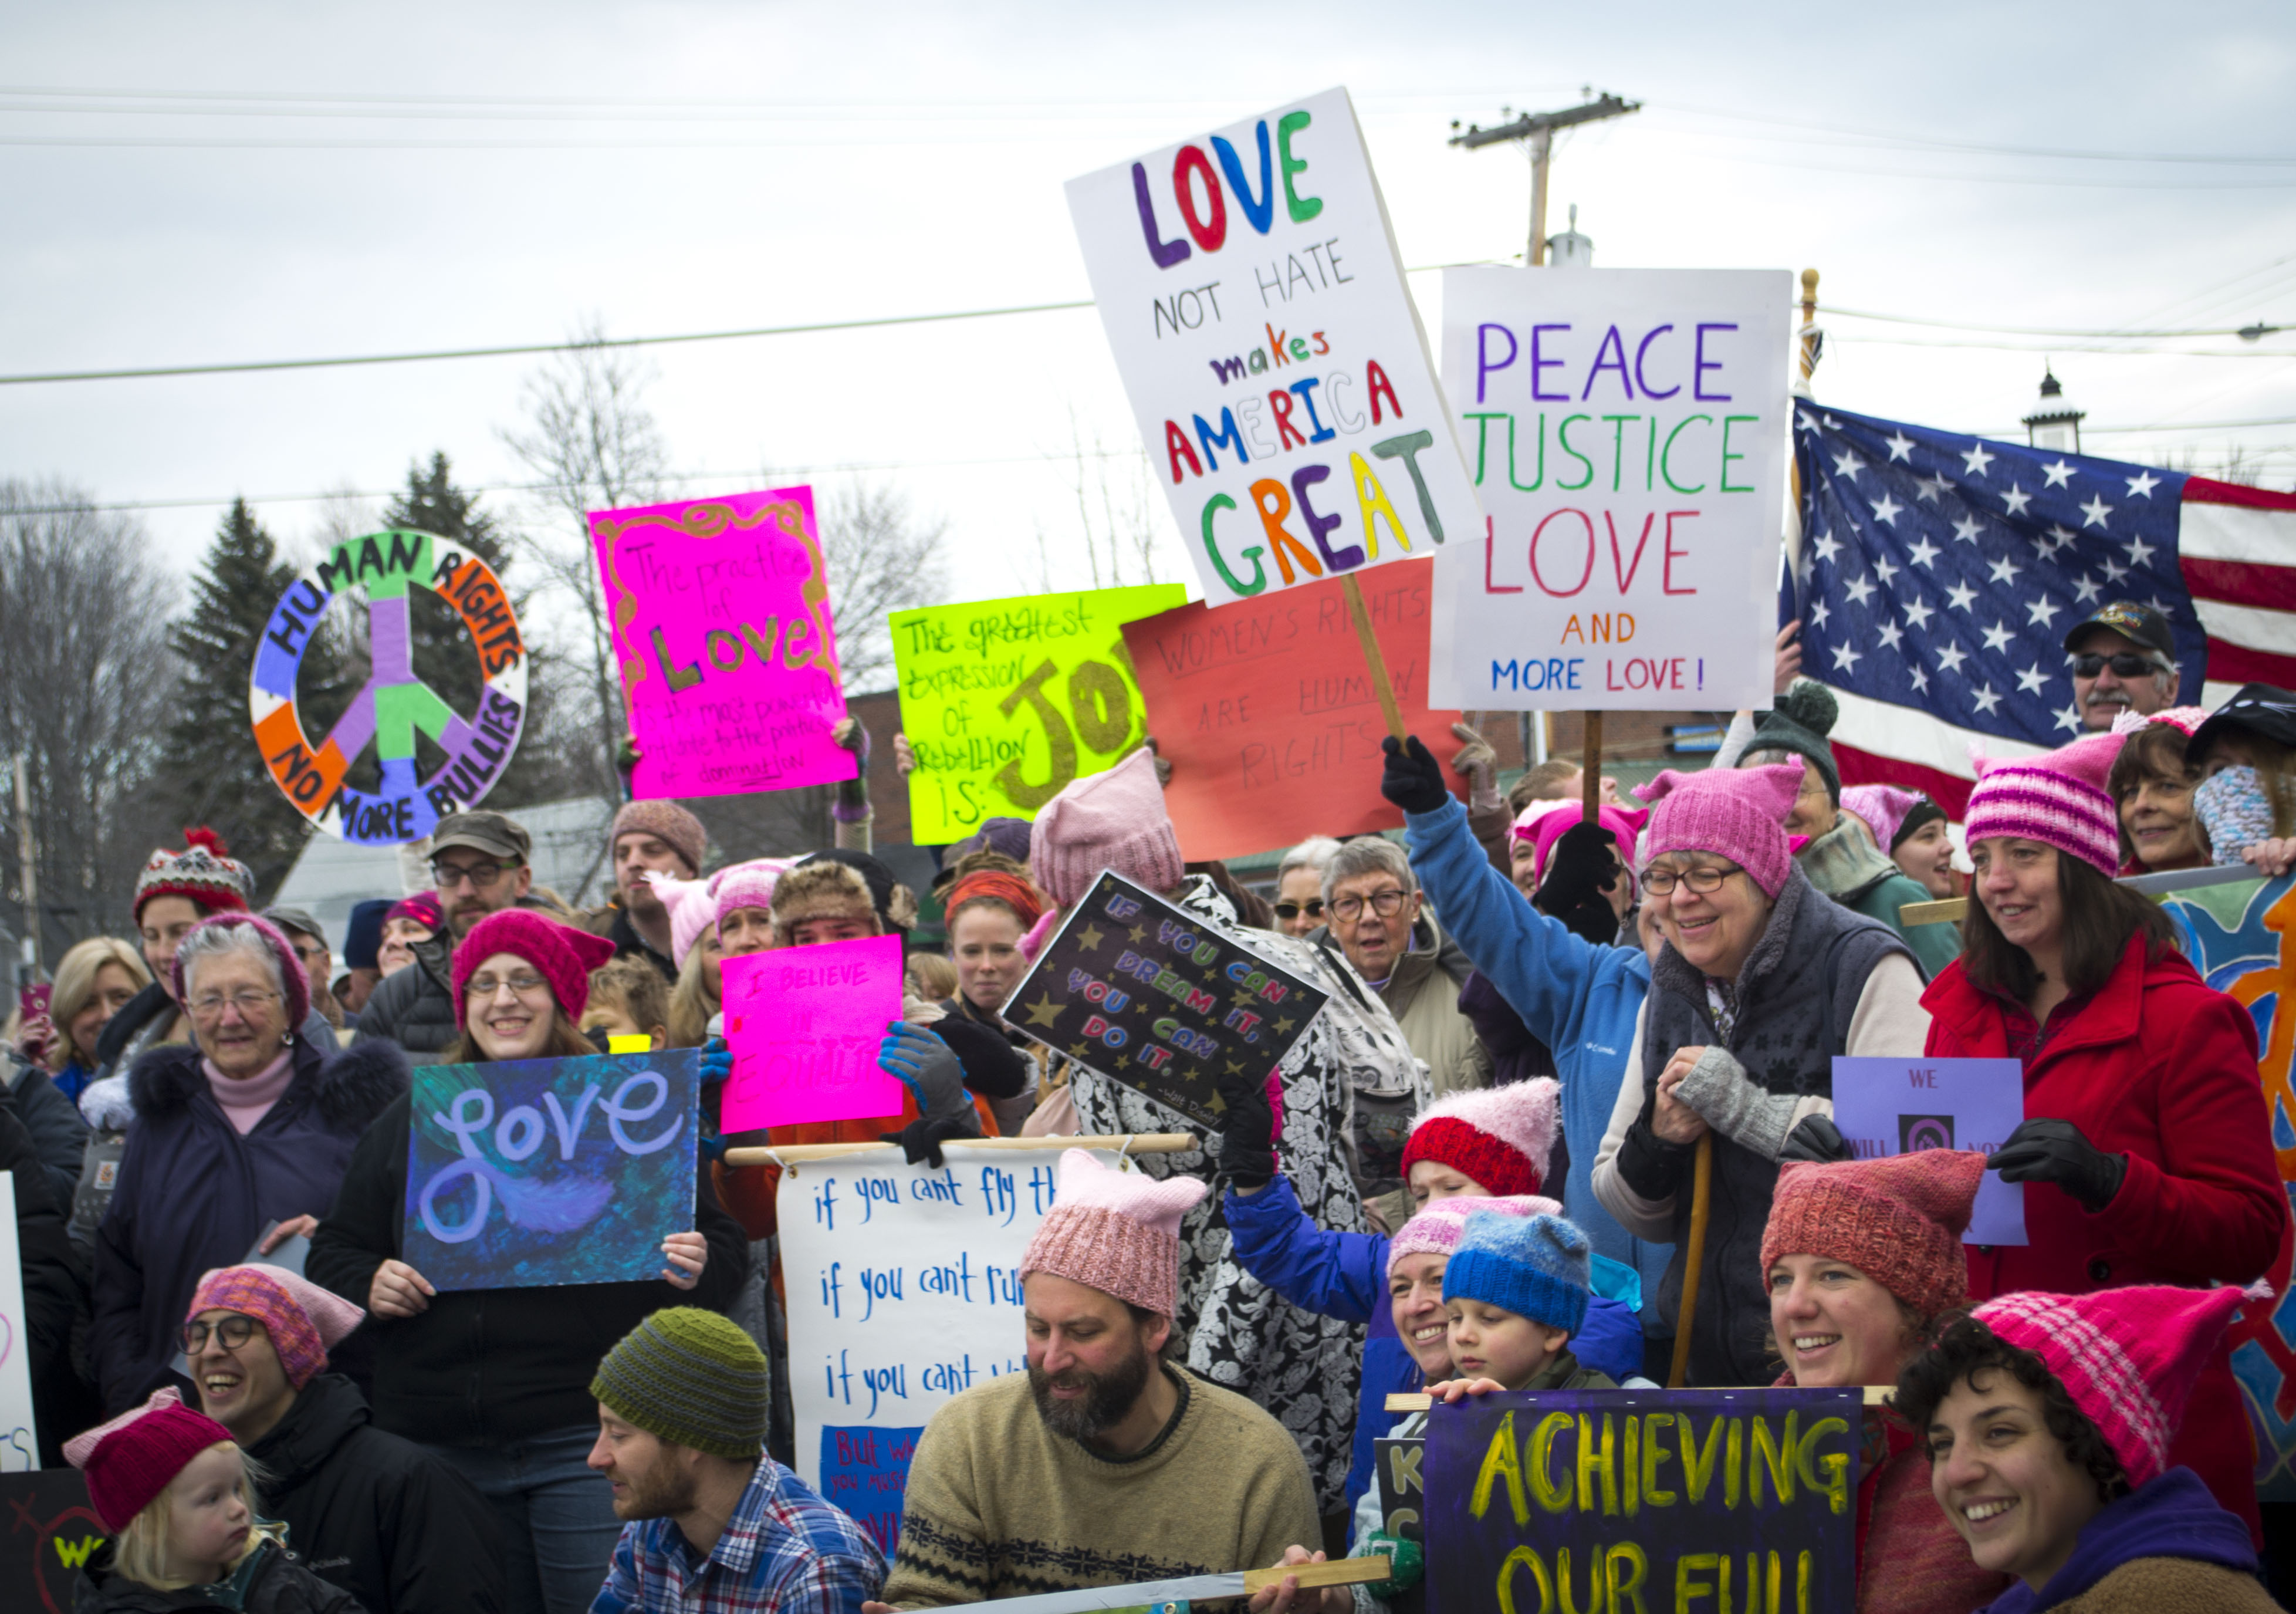 A crowd of about 100 gathers at a rally before taking to the streets during the Women's March on Maine: Sanford on Saturday, to advocate for women's, civil and human rights. ALAN BENNETT/Journal Tribune